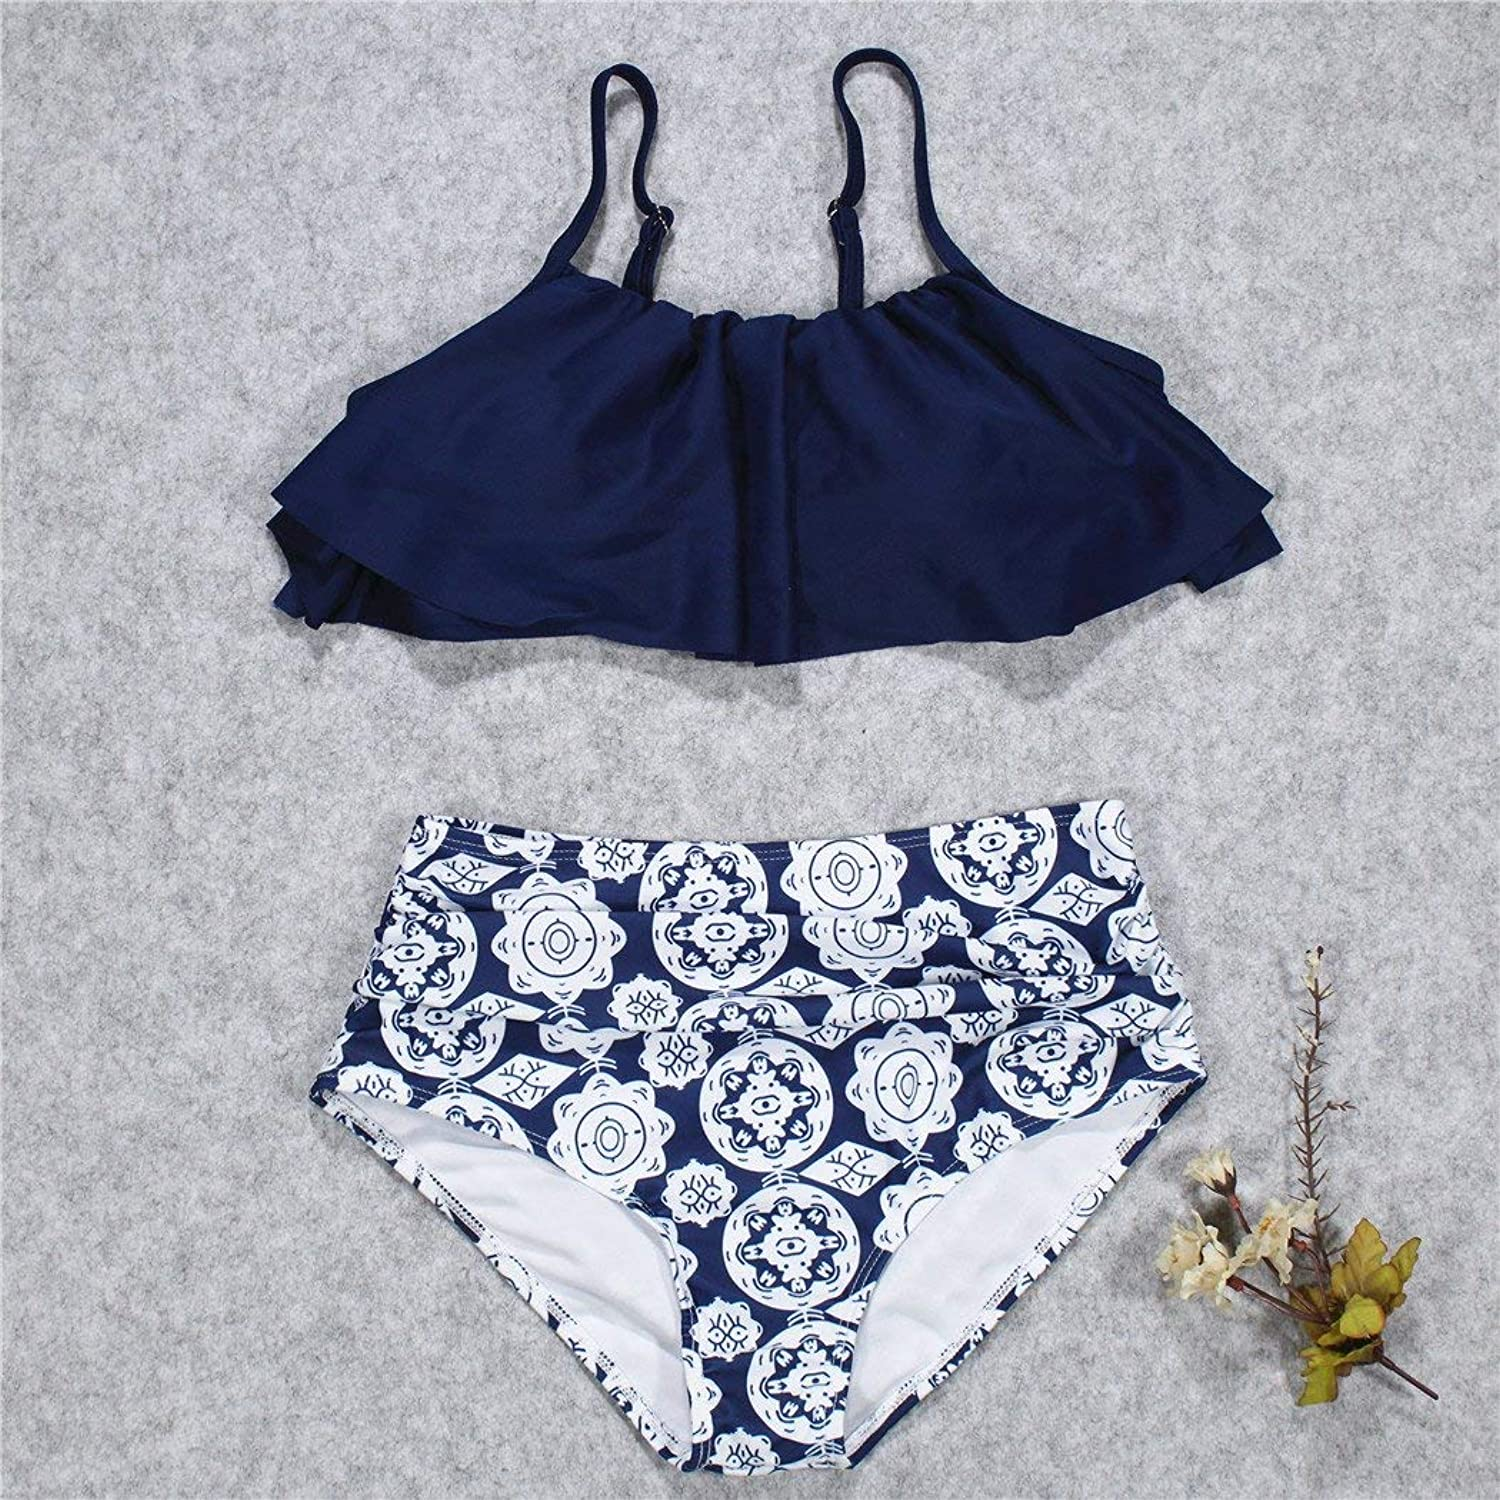 The Straps Bikini Slotted Shoulder Split Lotus Leaves Printing Multicolor High Waist, Navy,XL (color   As Shown, Size   One Size)